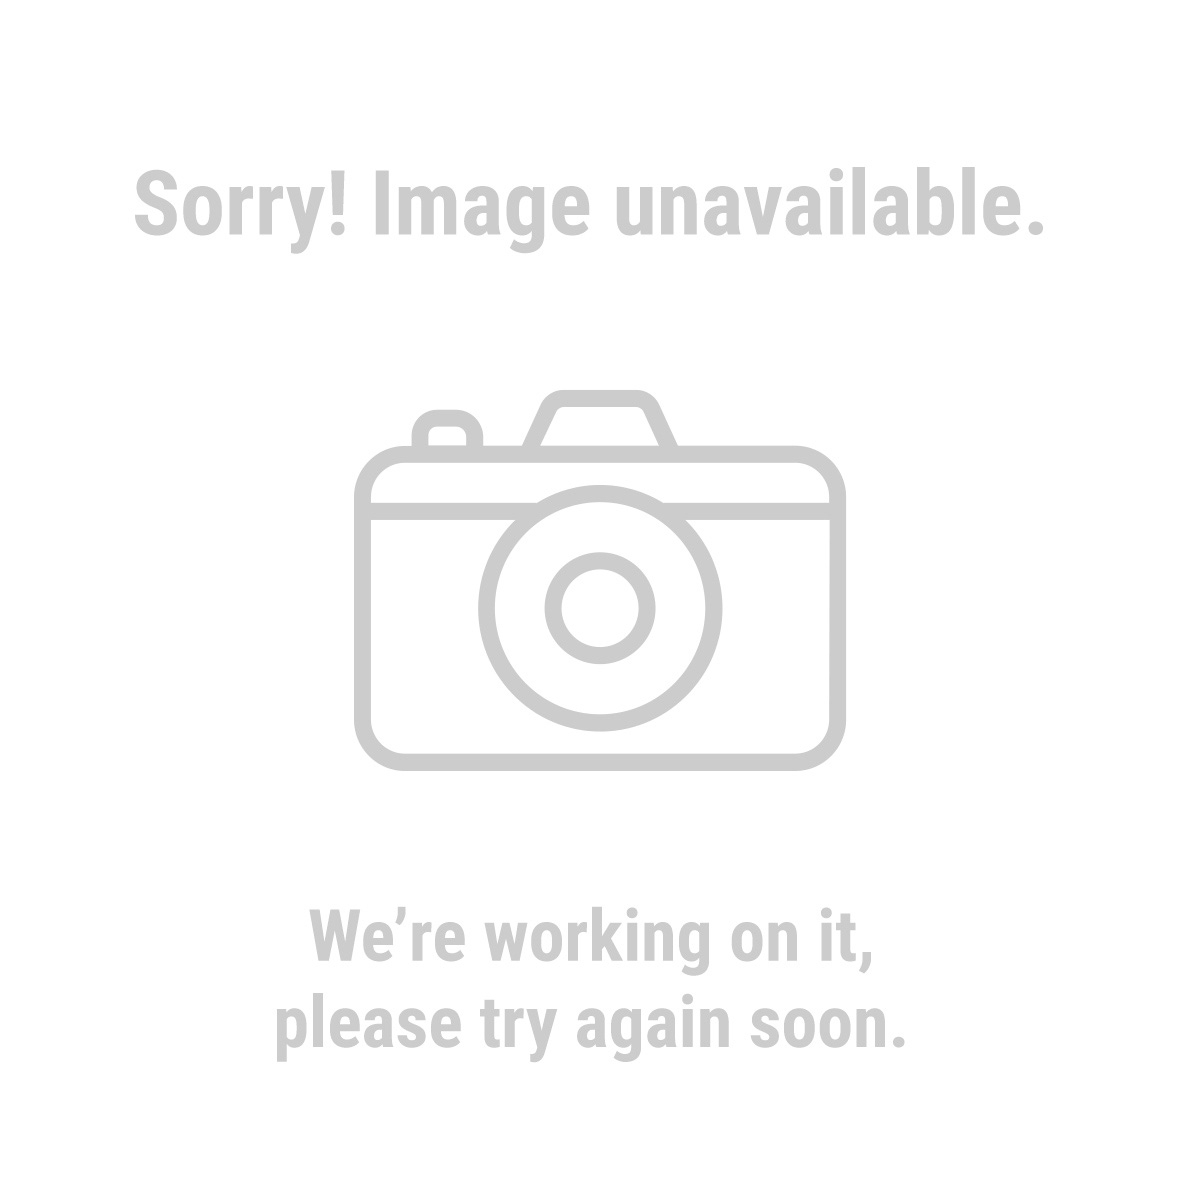 Pacific Hydrostar 98445 4 HP 2000 PSI Gas Pressure Washer with Wheels - CARB - California Only